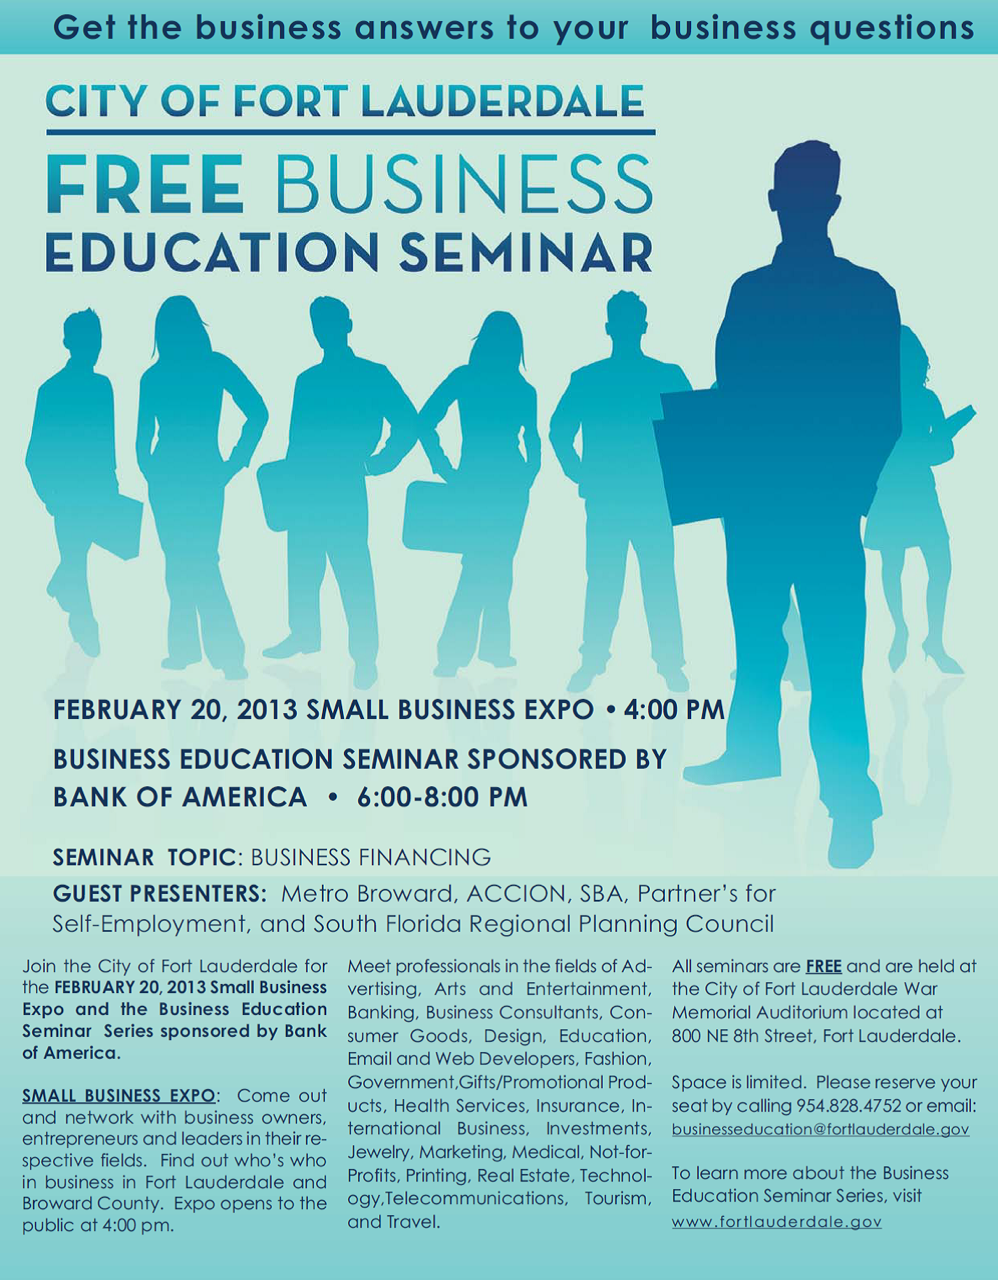 image0021 Feb. 20, 2013 Small Business Expo and Business Seminar